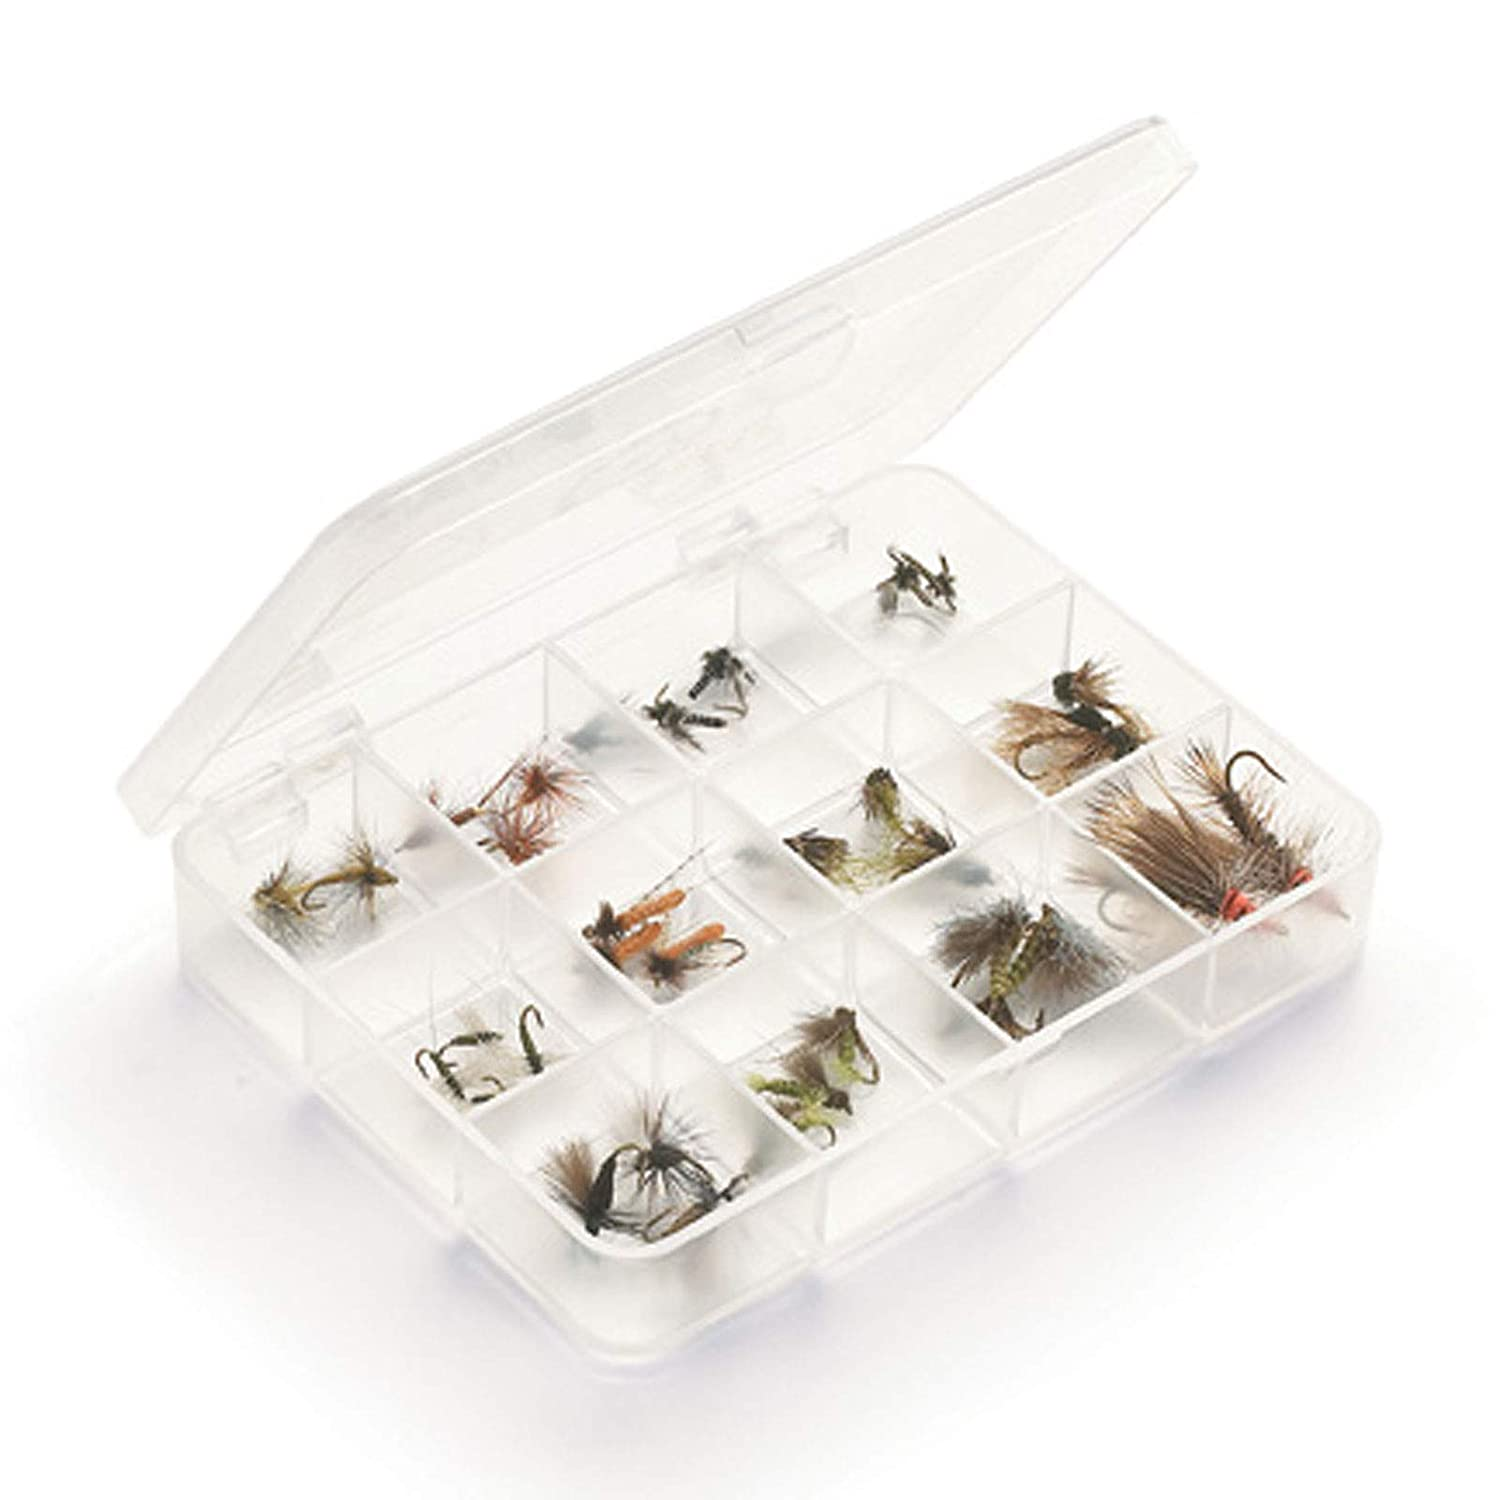 Umpqua Myran 1120 Fly Box